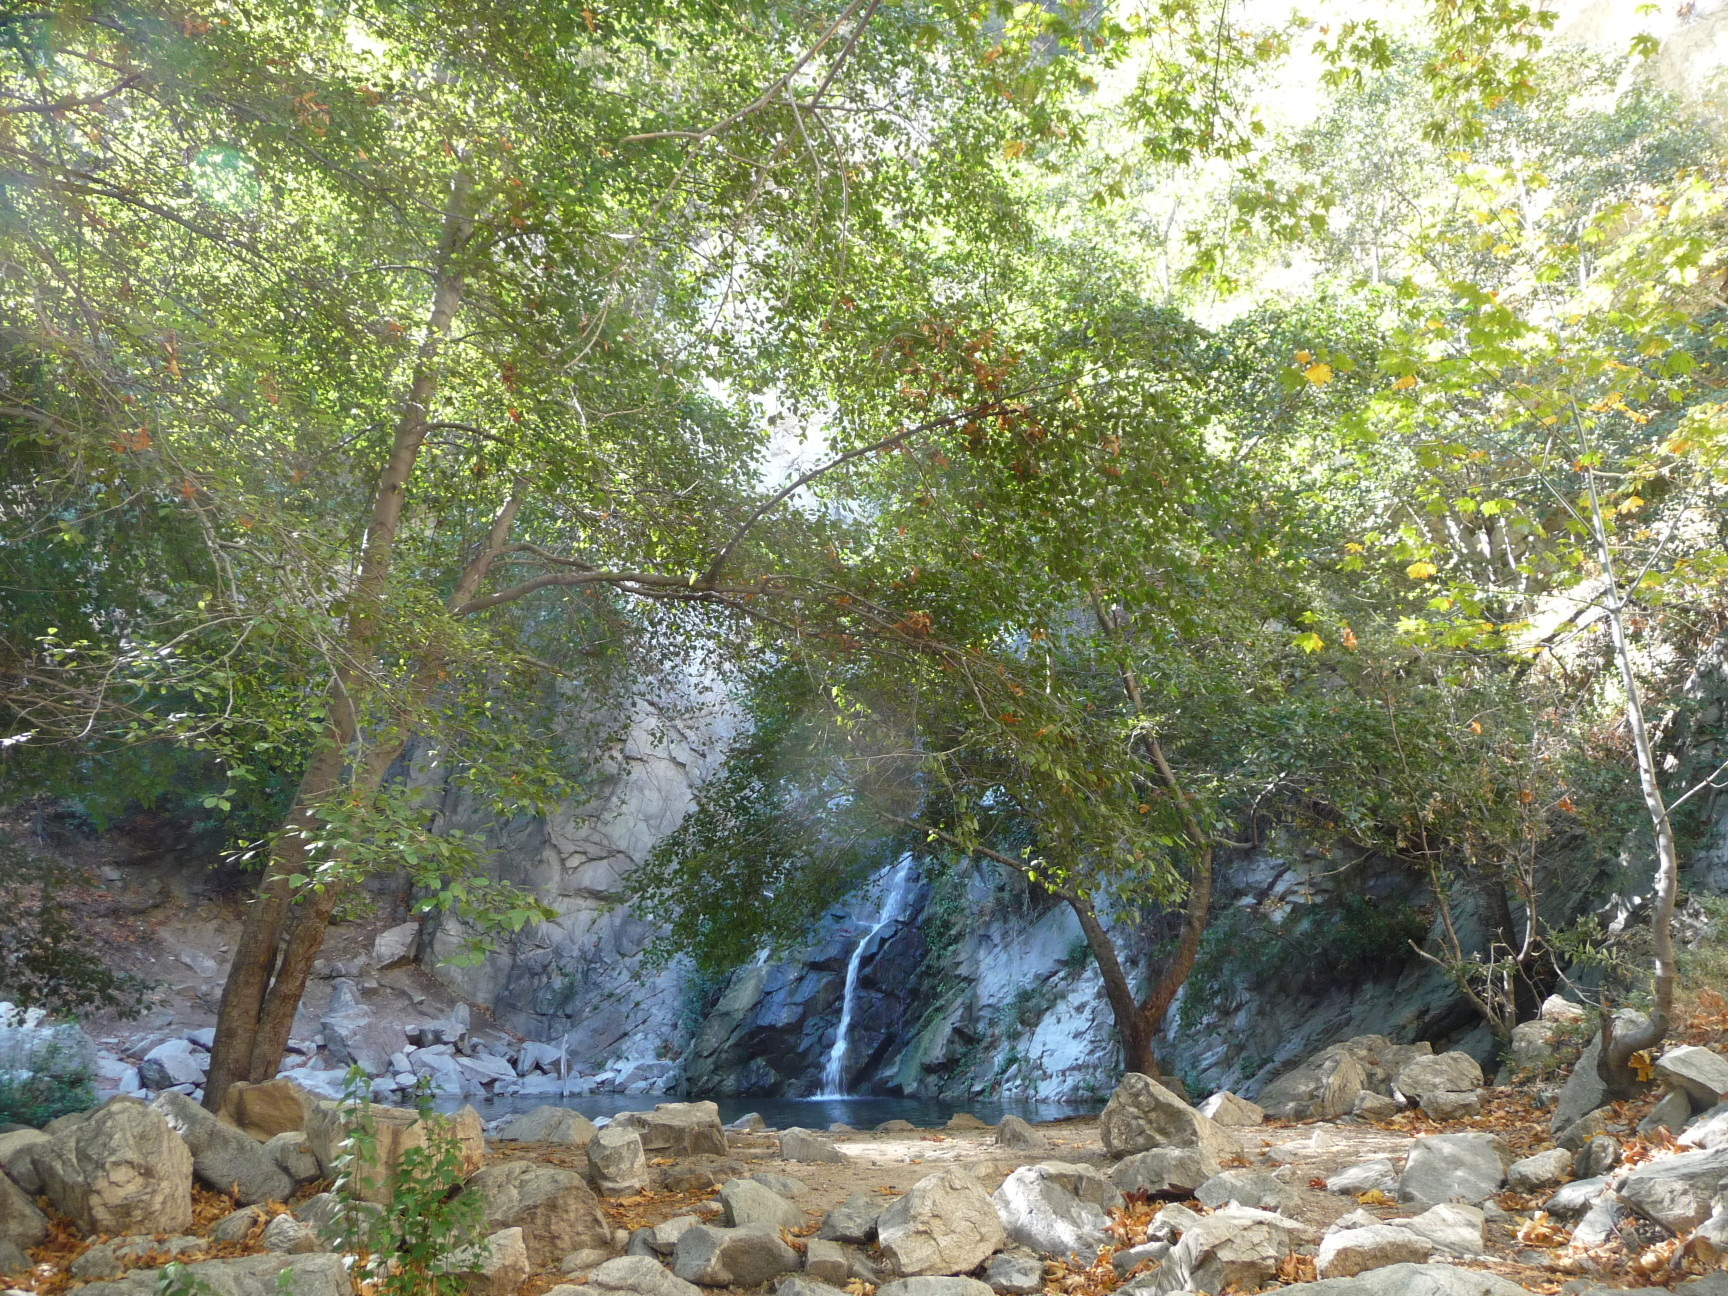 First View of the Waterfall